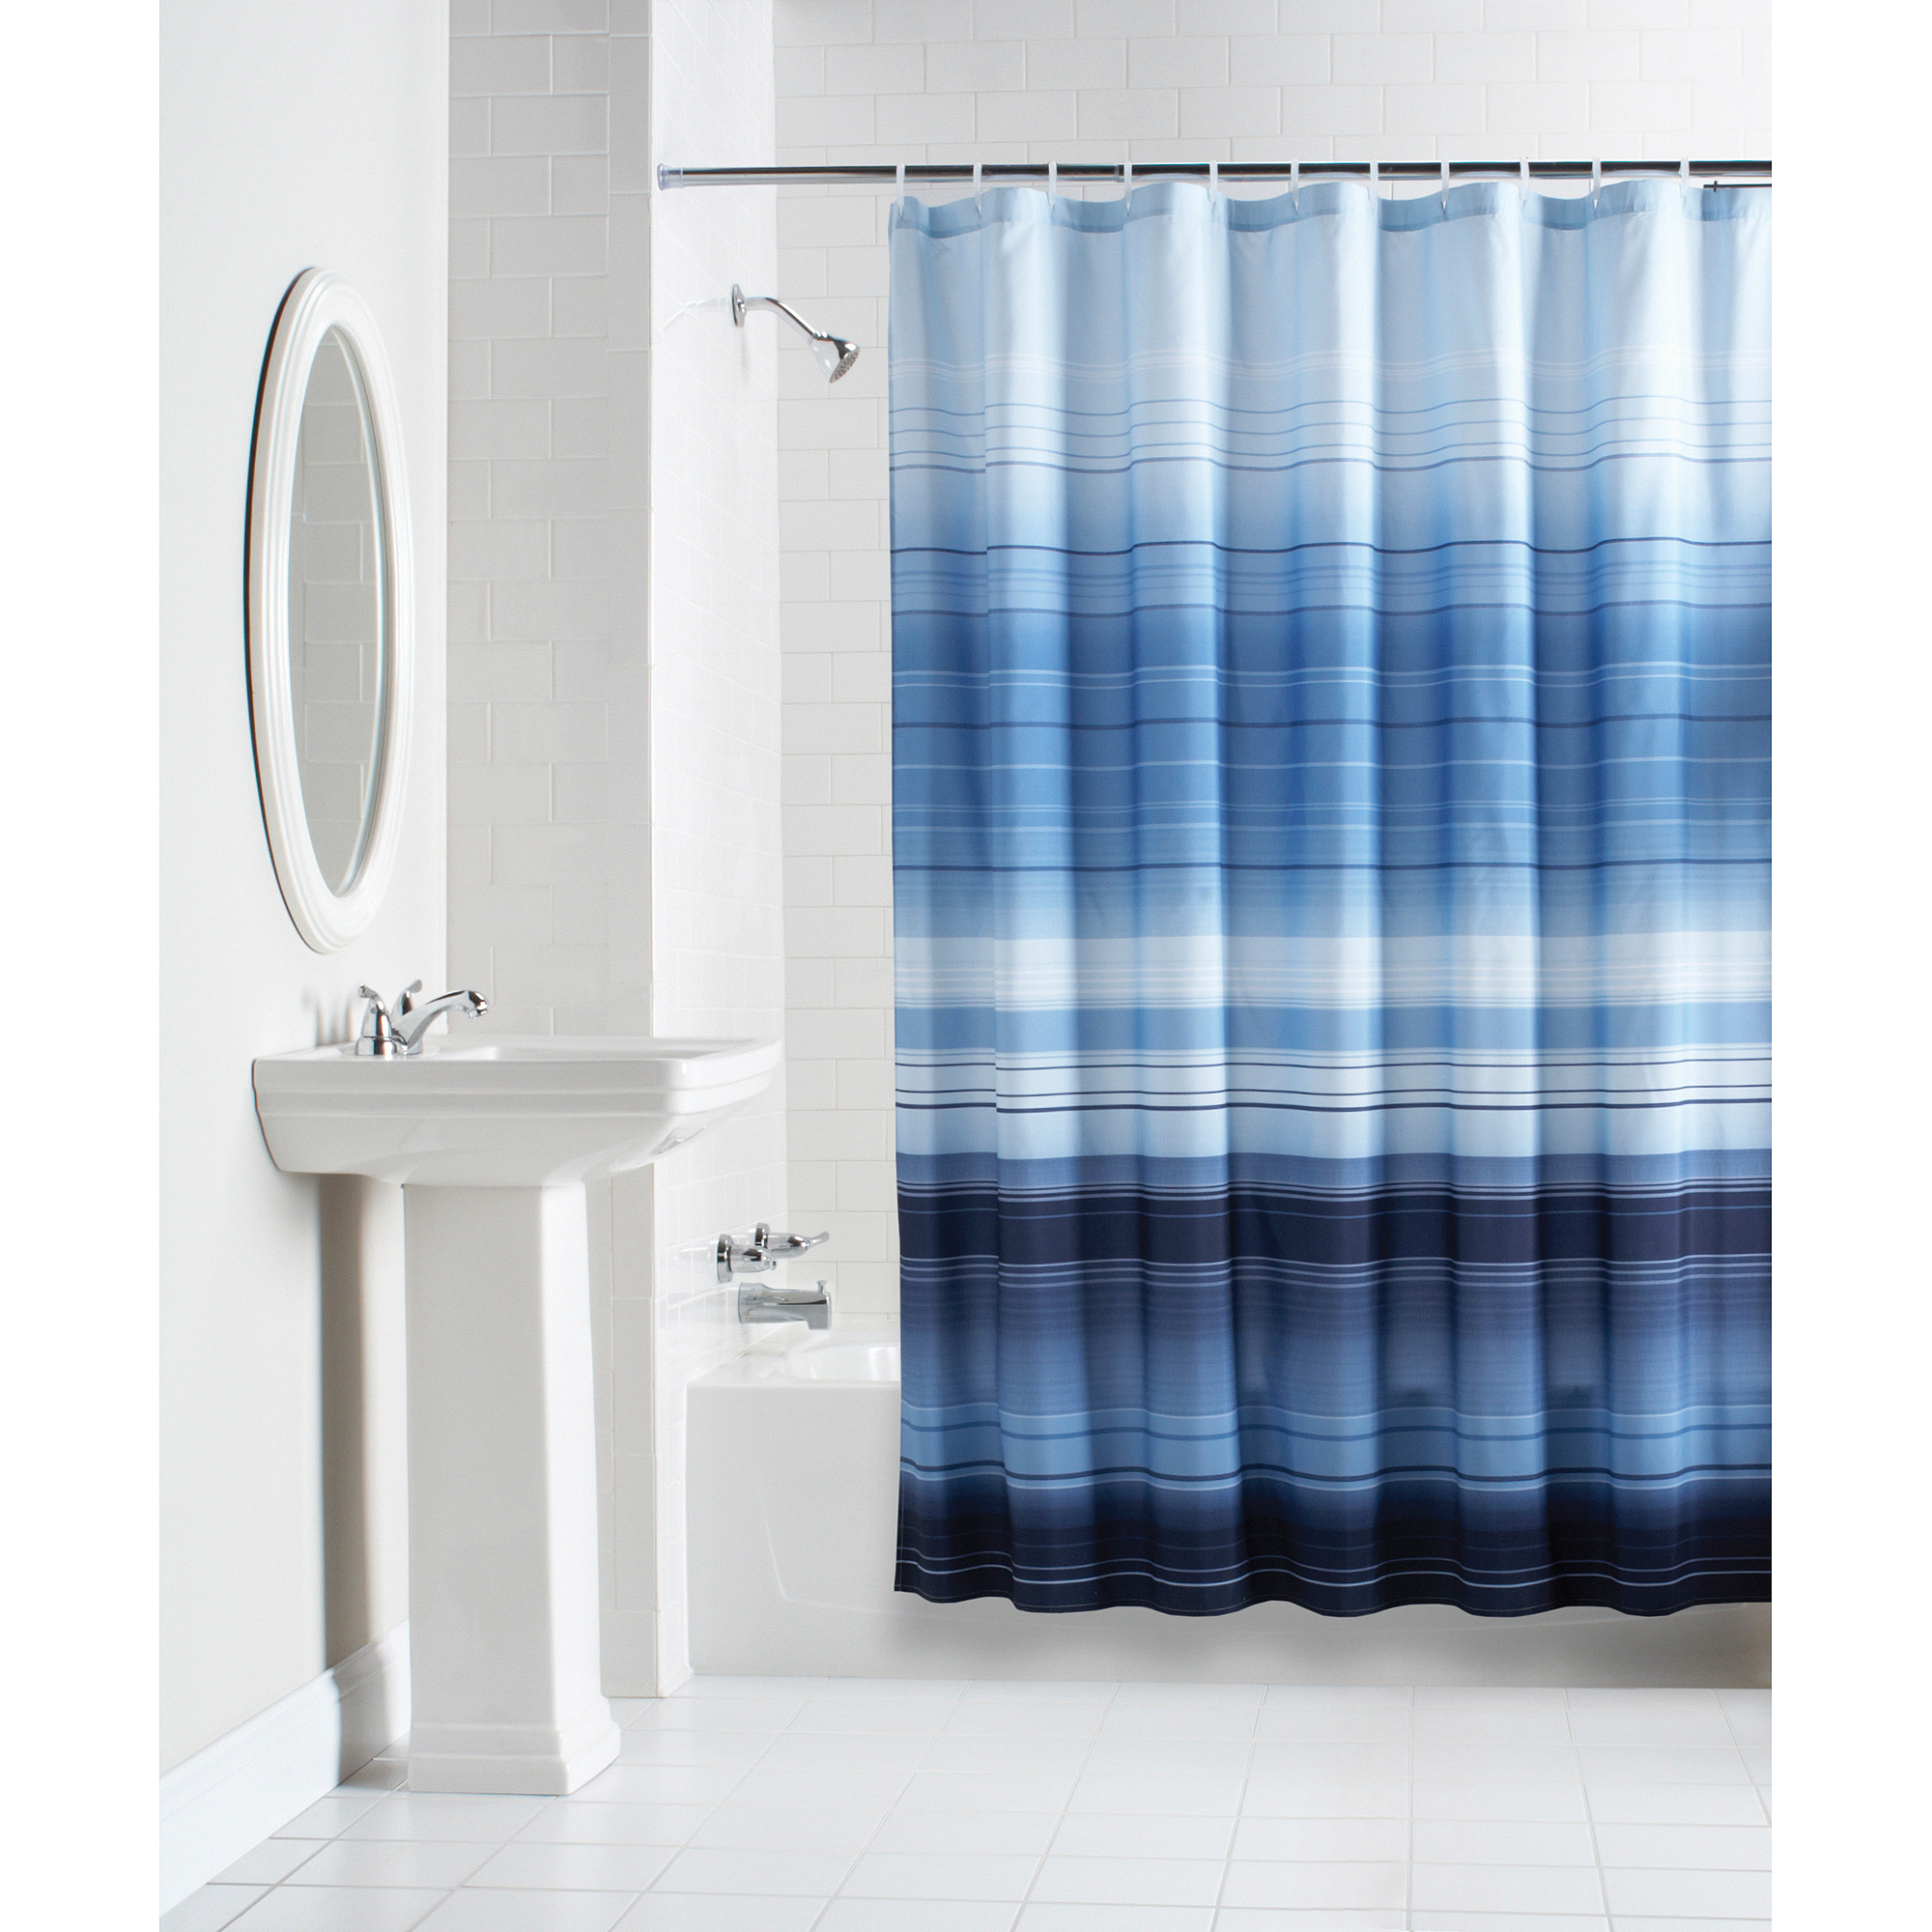 Shower Curtains Walmart throughout dimensions 2000 X 2000